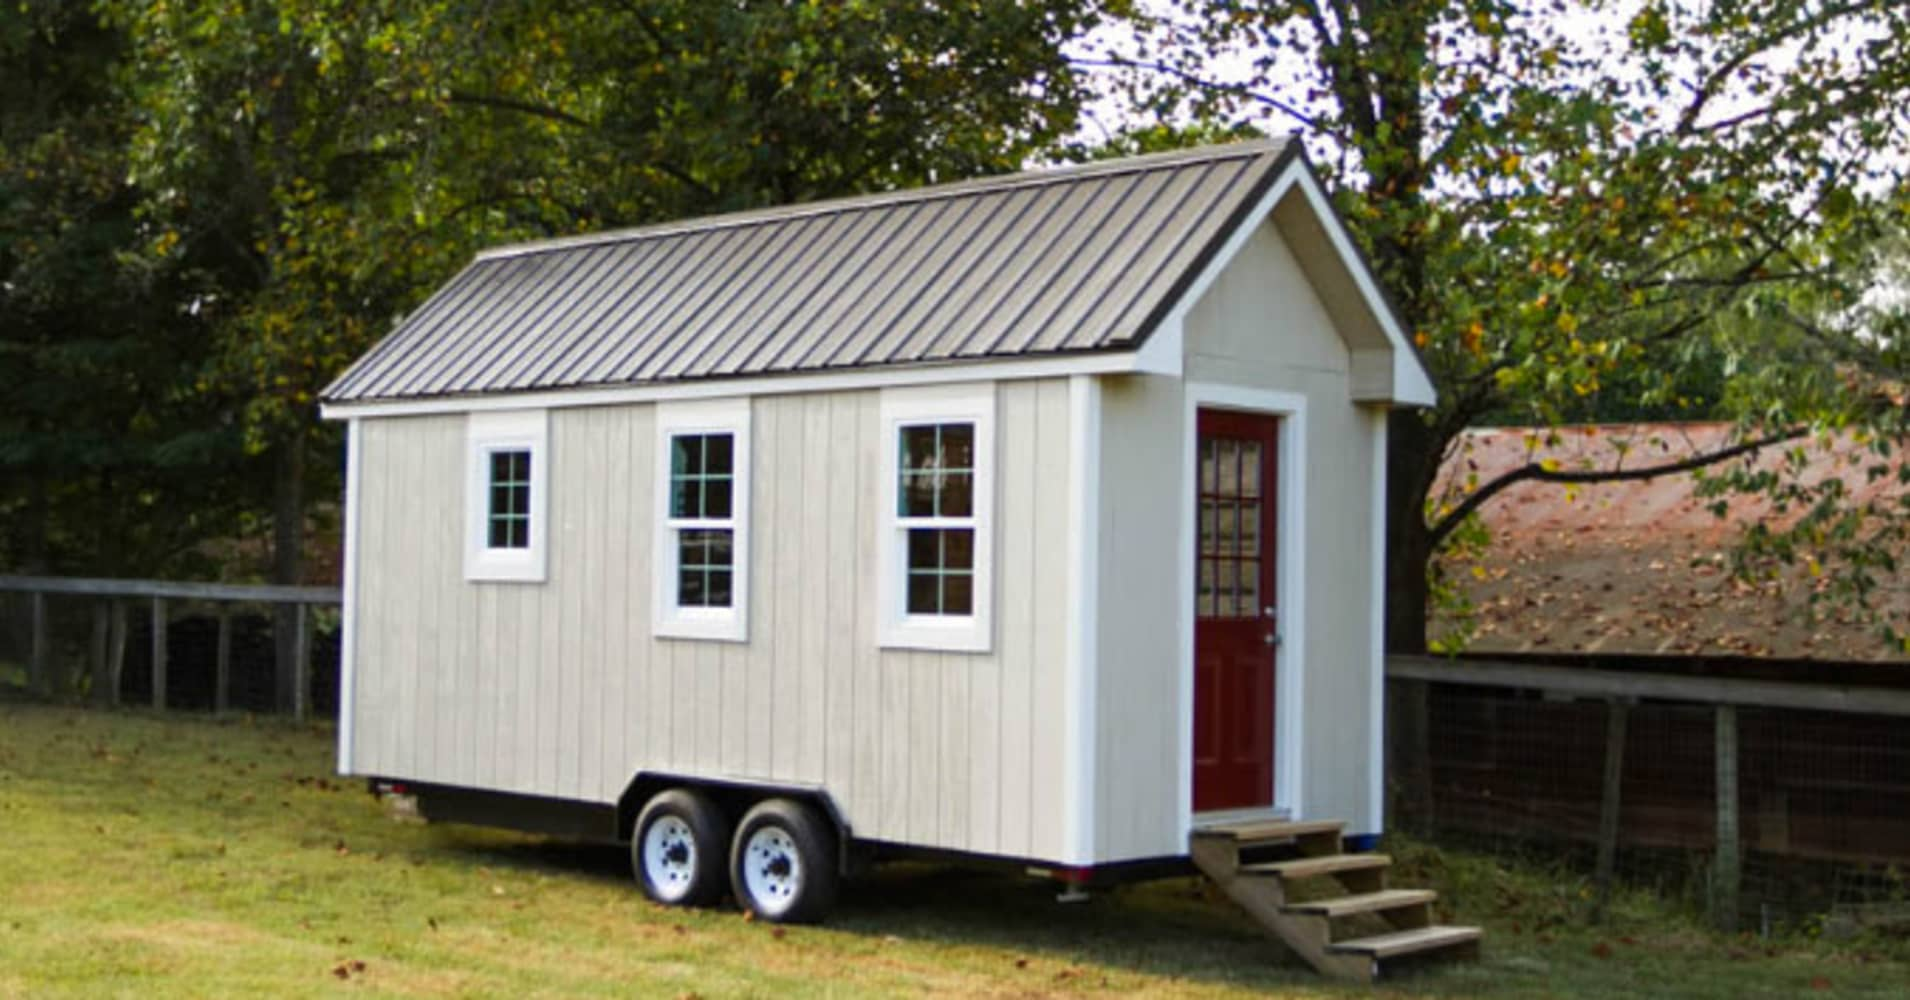 Fullsize Of Tiny Homes For Sale In Florida